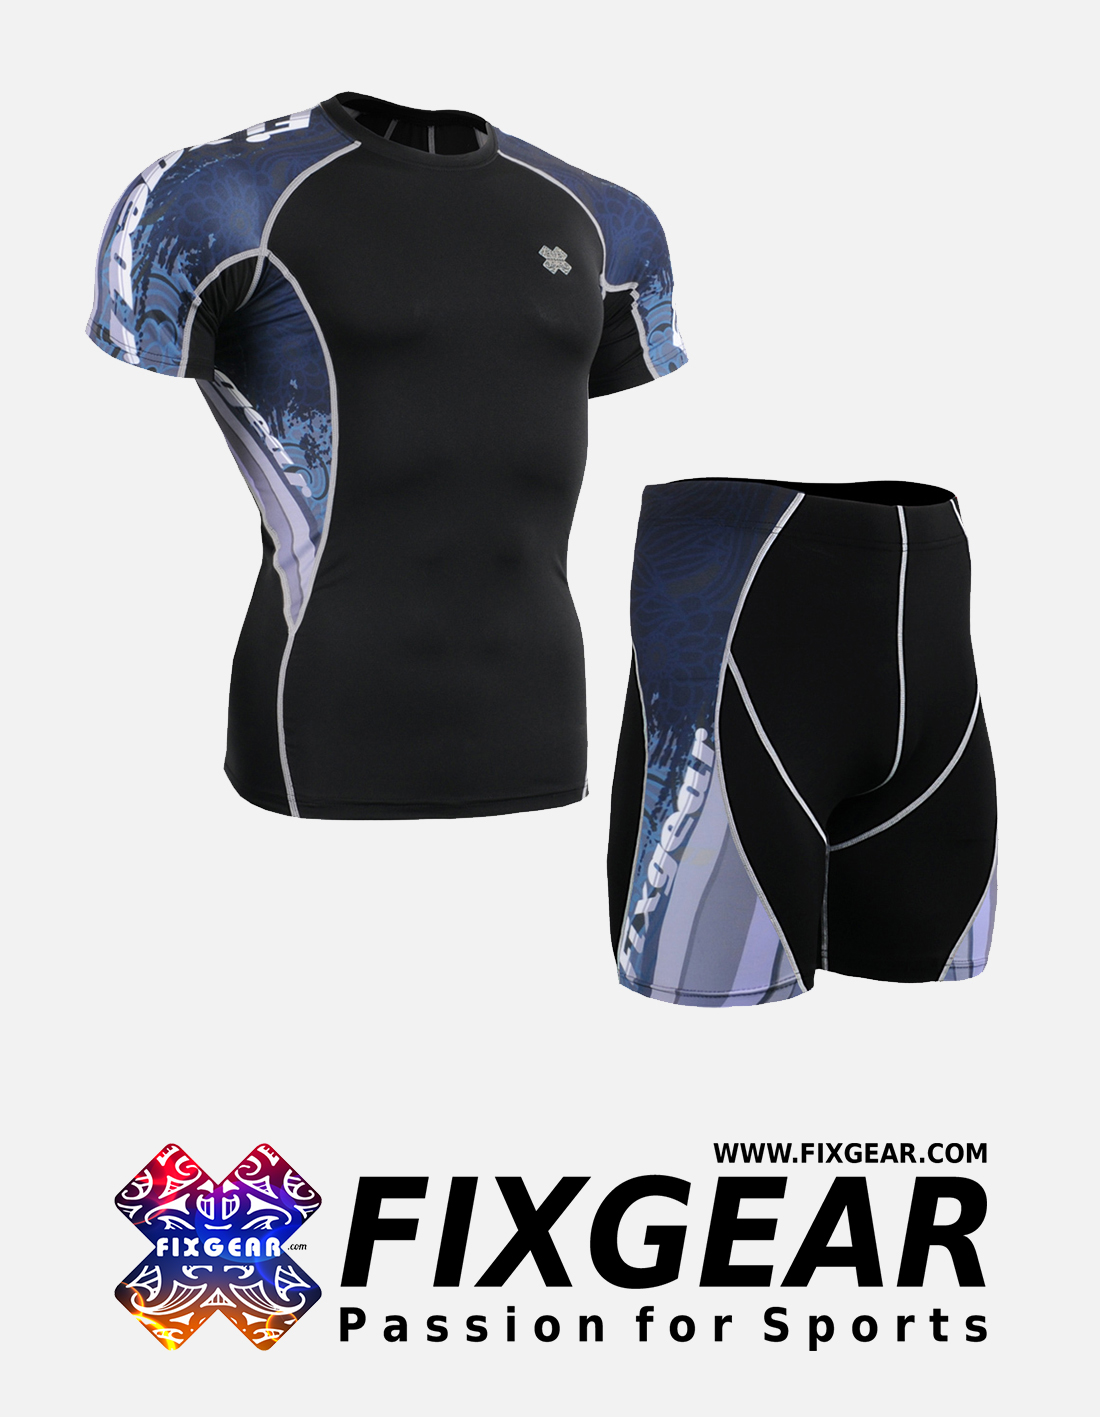 FIXGEAR C2S-P2S-B48 Set Compression Base Layer Shirt & Compression Drawer Shorts